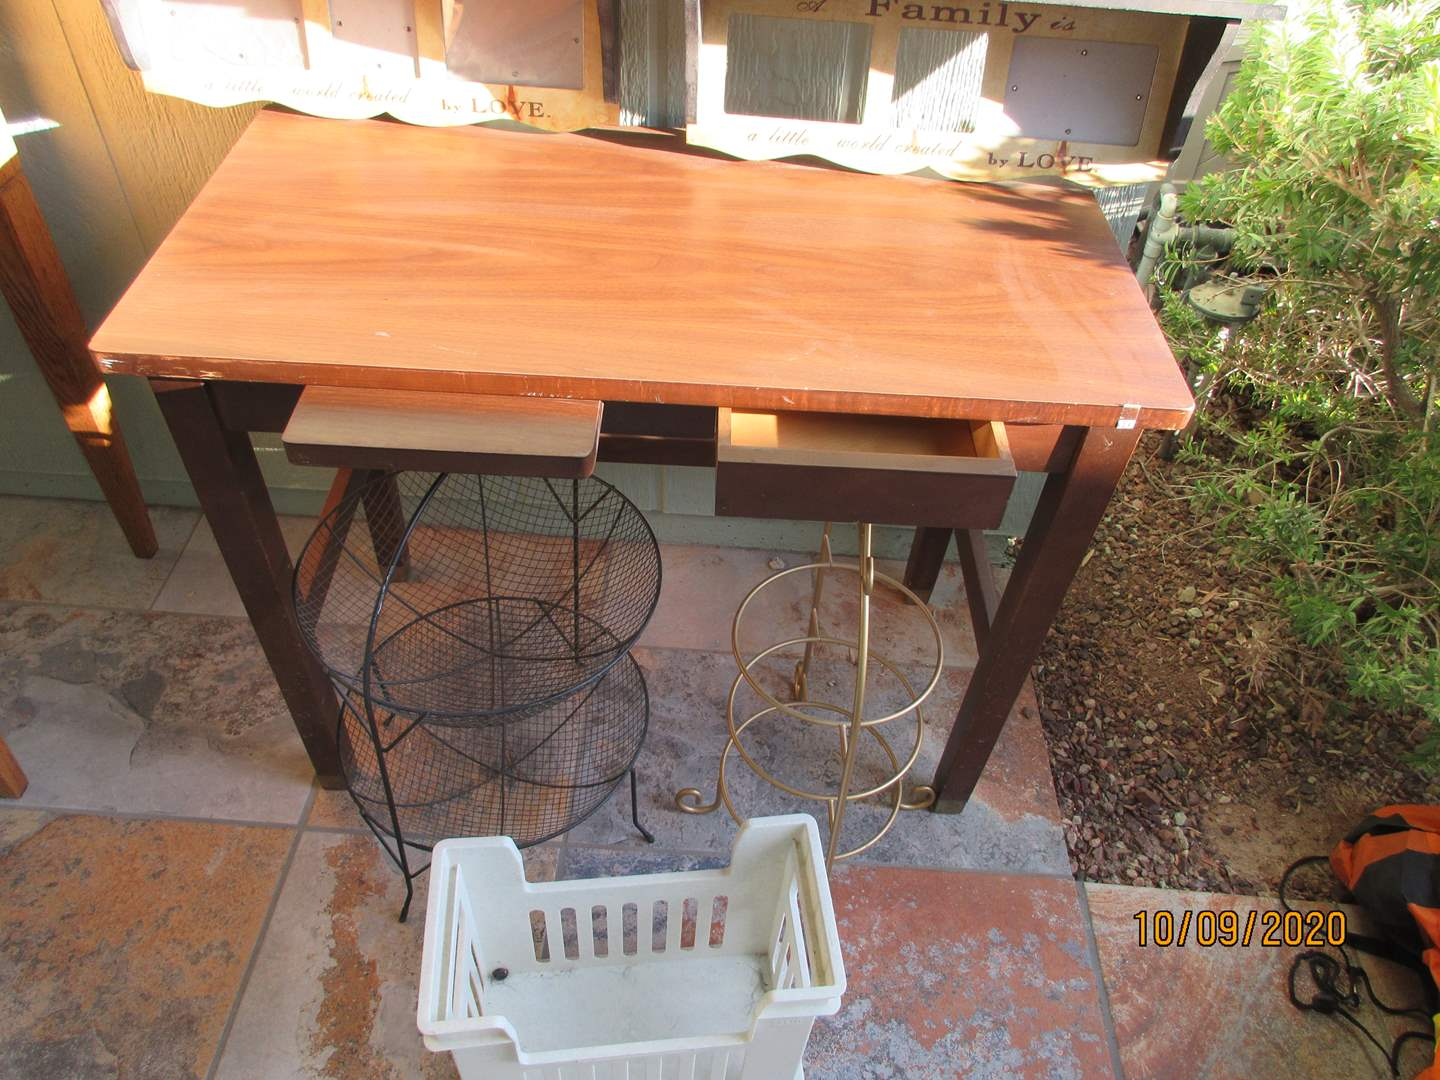 Lot # 298 - Table, Wall Art, 2 Stands & Basket (main image)